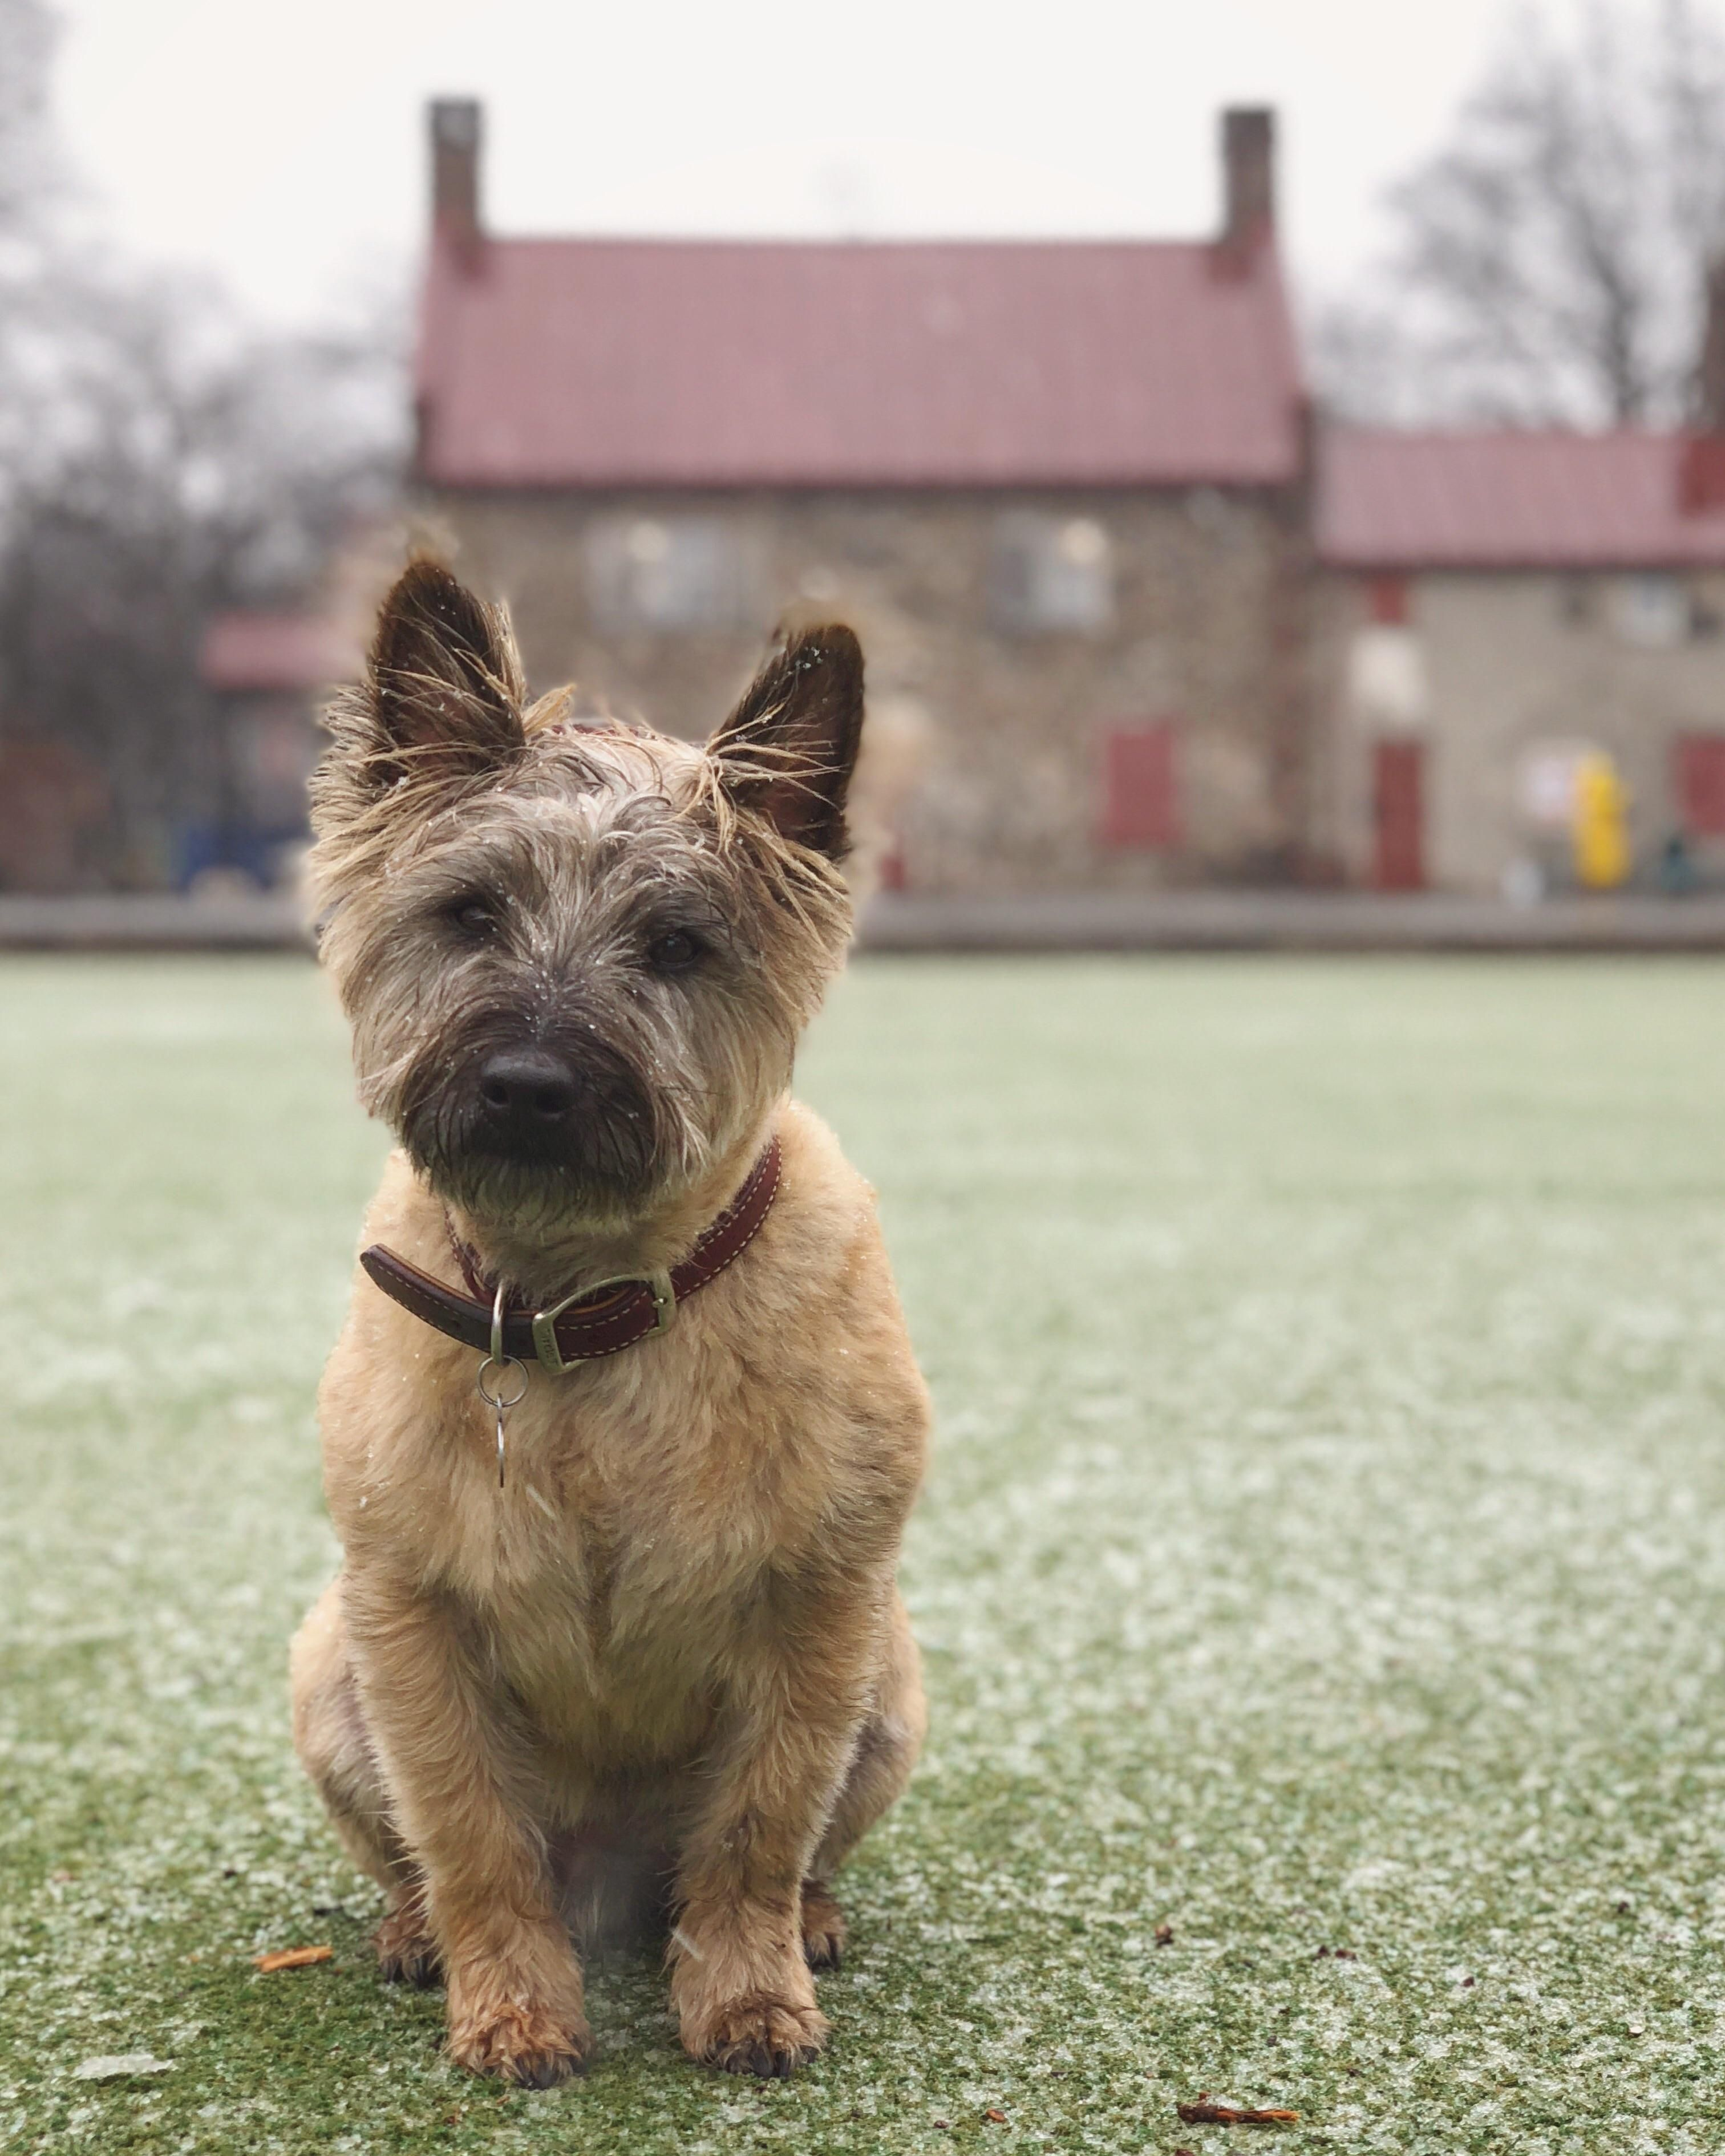 Simple Cairn Terrier Ball Adorable Dog - 1a0689c151c3e8cdfc10df1ae2ef6d66  Graphic_383466  .jpg